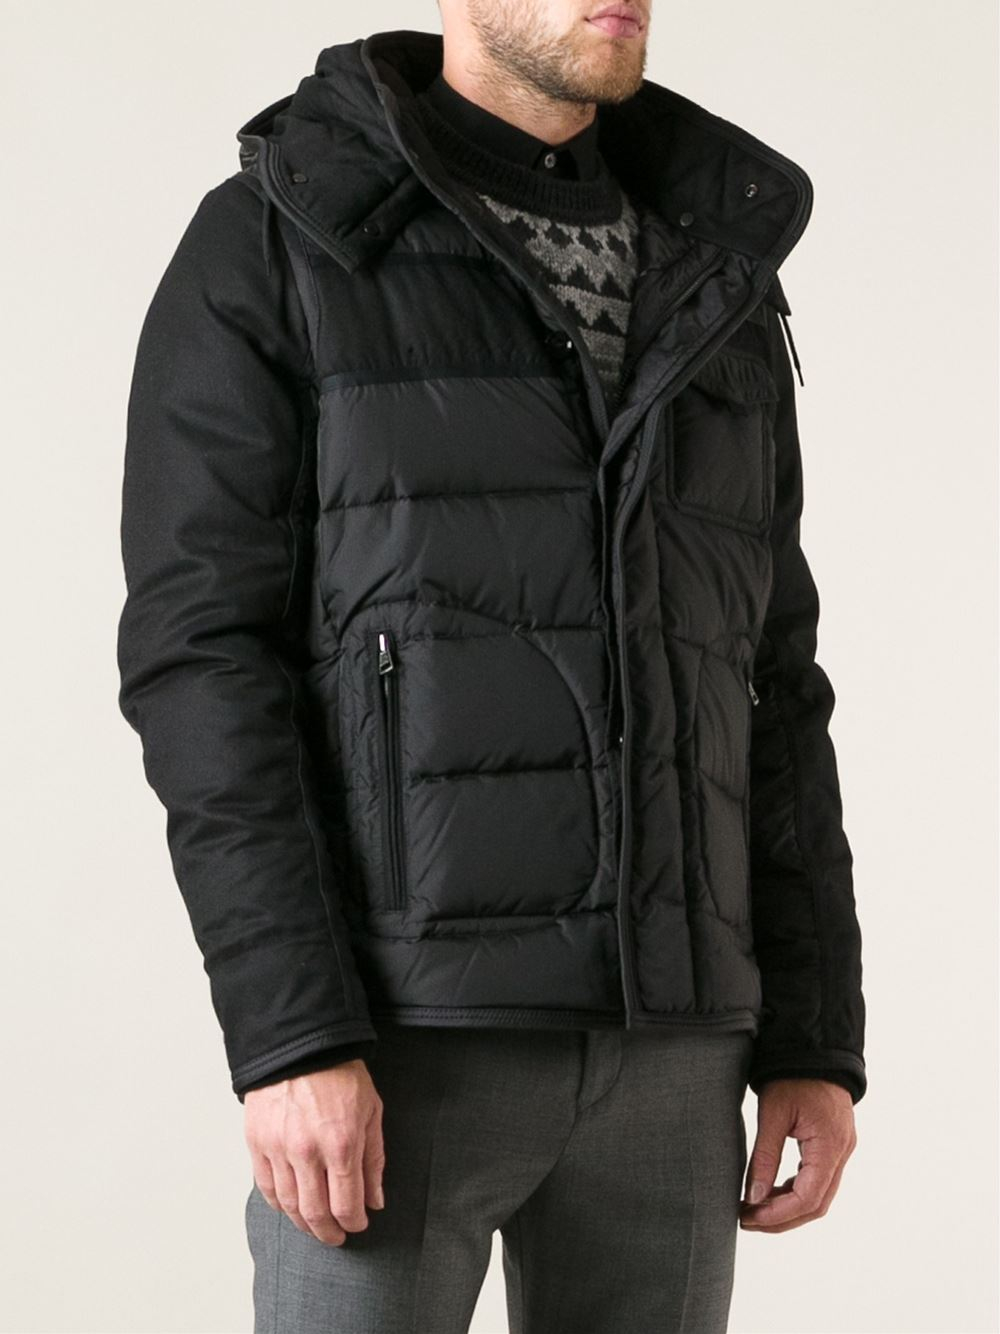 moncler ryan jacket in black for men lyst. Black Bedroom Furniture Sets. Home Design Ideas